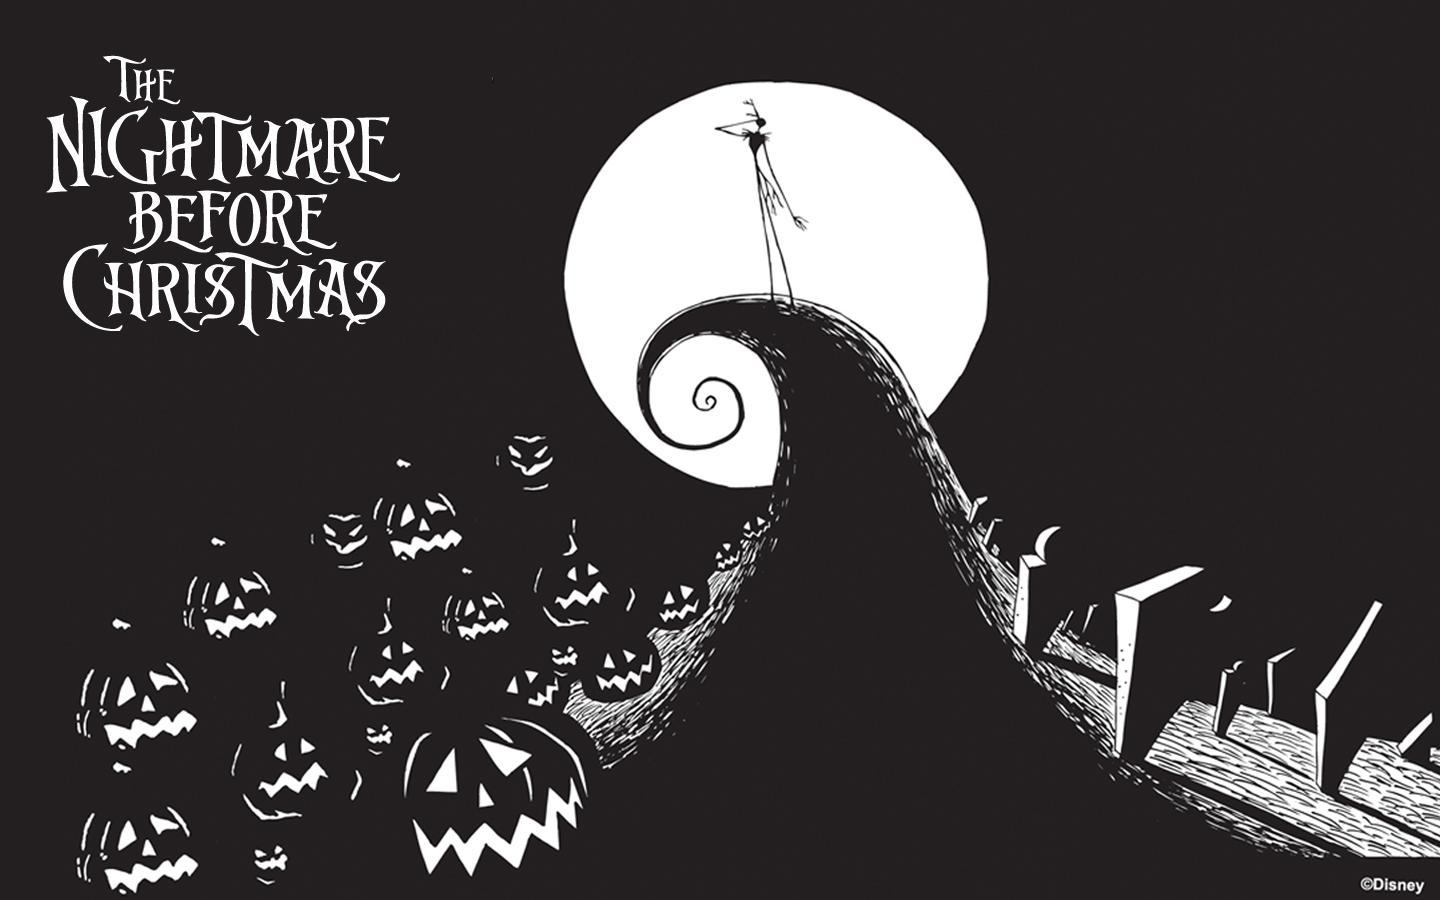 The Nightmare Before Christmas Wallpapers 30088 9444926 Thebiem